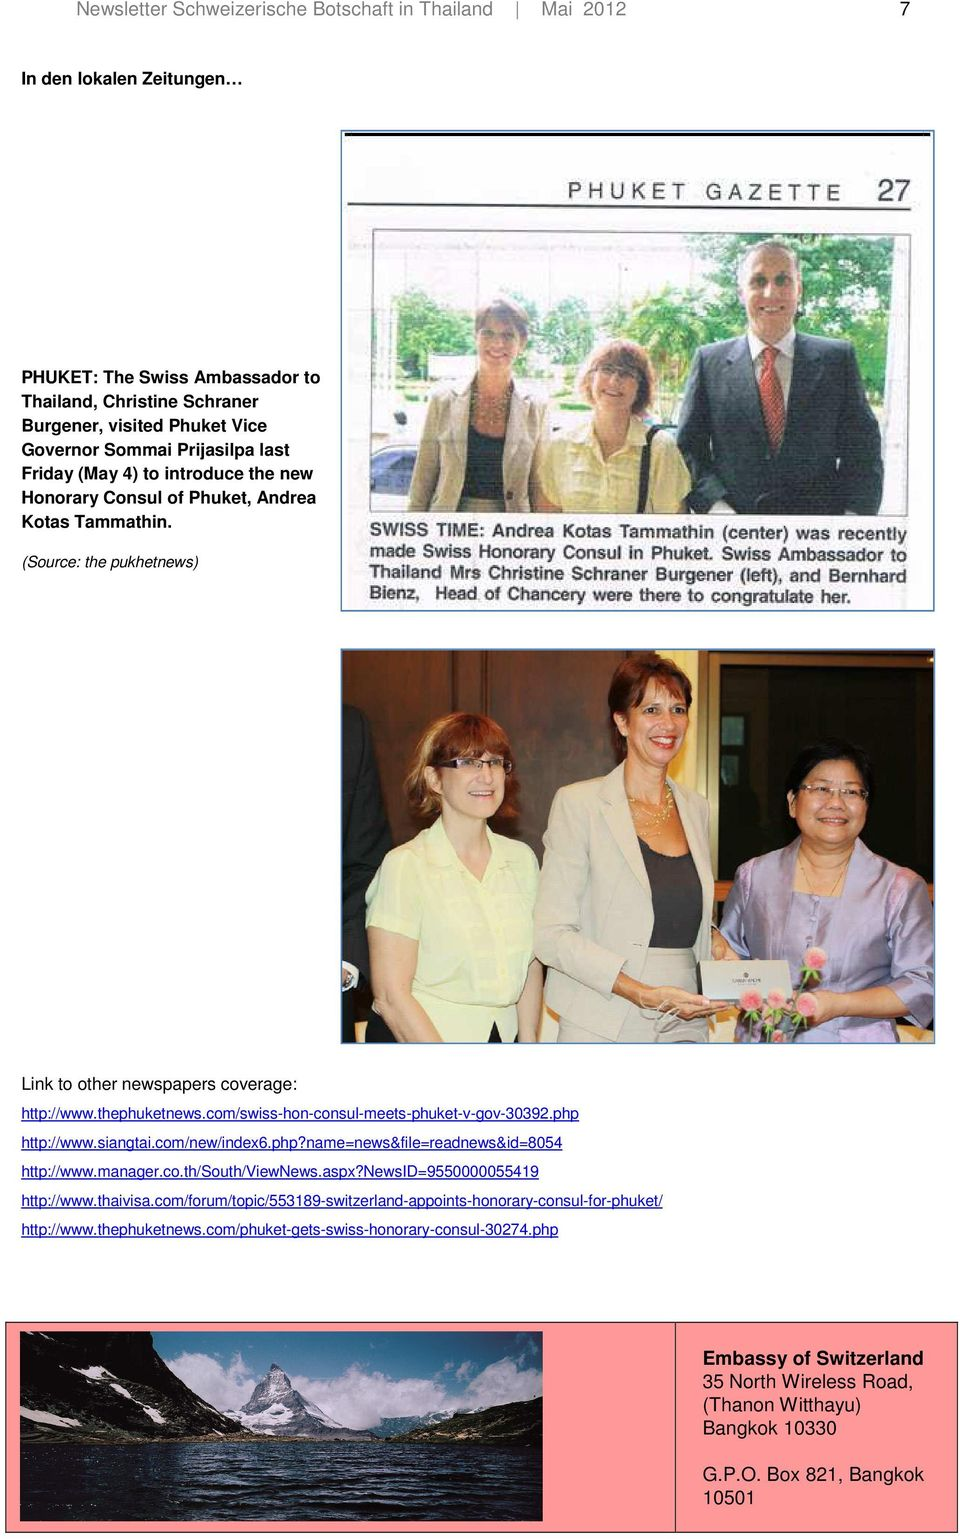 (Source: the pukhetnews) Link to other newspapers coverage: http://www.thephuketnews.com/swiss-hon-consul-meets-phuket-v-gov-30392.php http://www.siangtai.com/new/index6.php?name=news&file=readnews&id=8054 http://www.